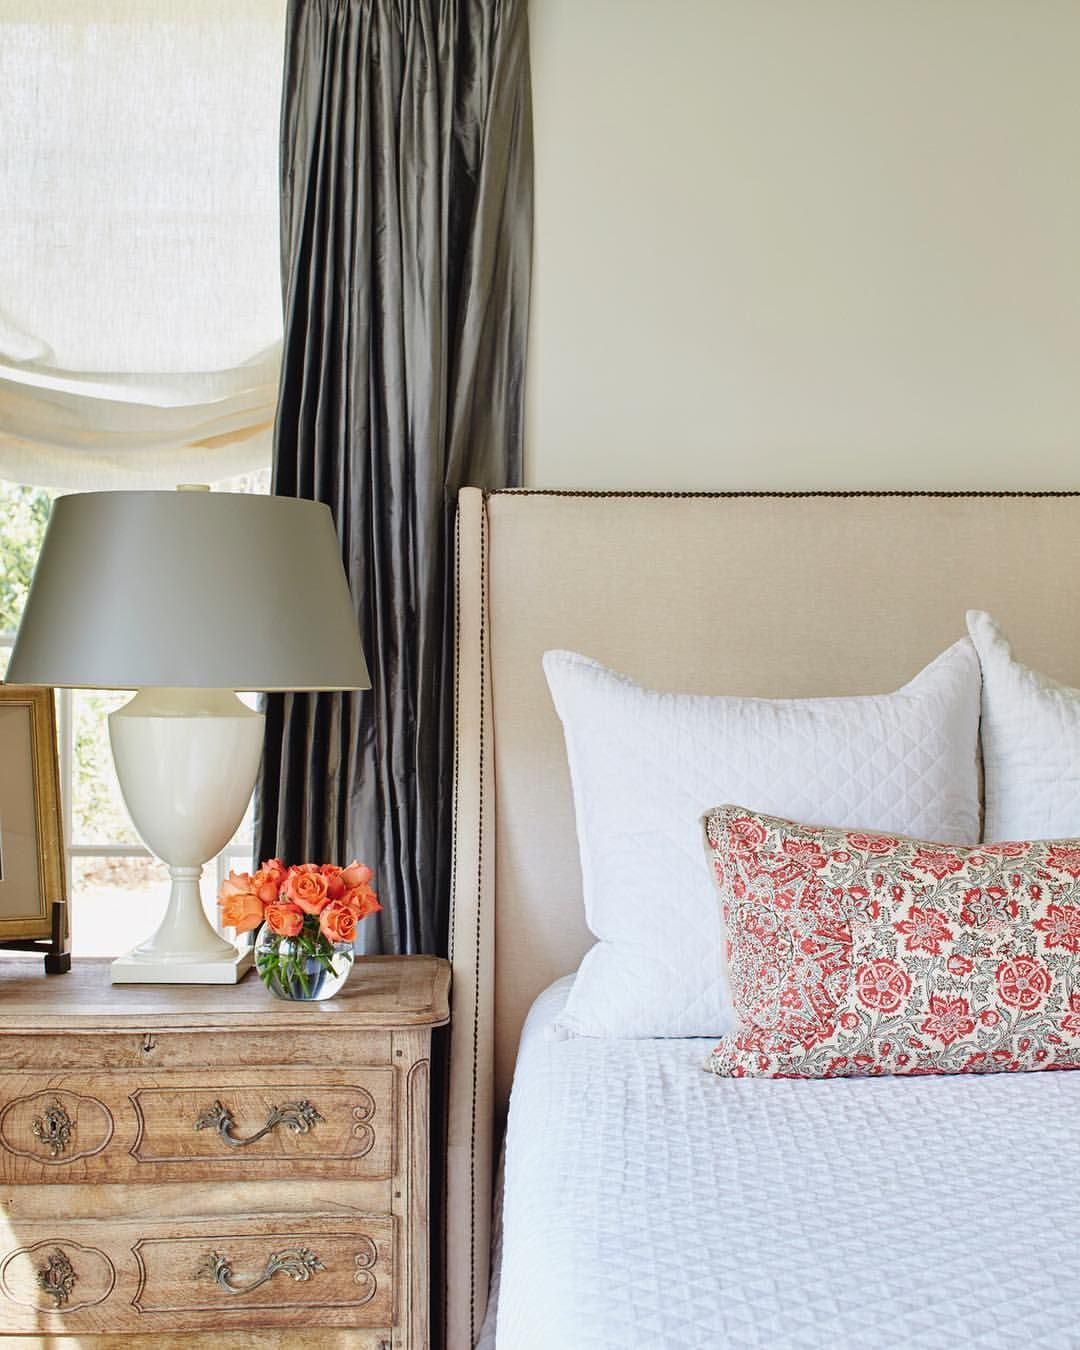 Small Romantic Master Bedroom Ideas: A Peek At Our Own @ashleyfgilbreath's Master Bedroom